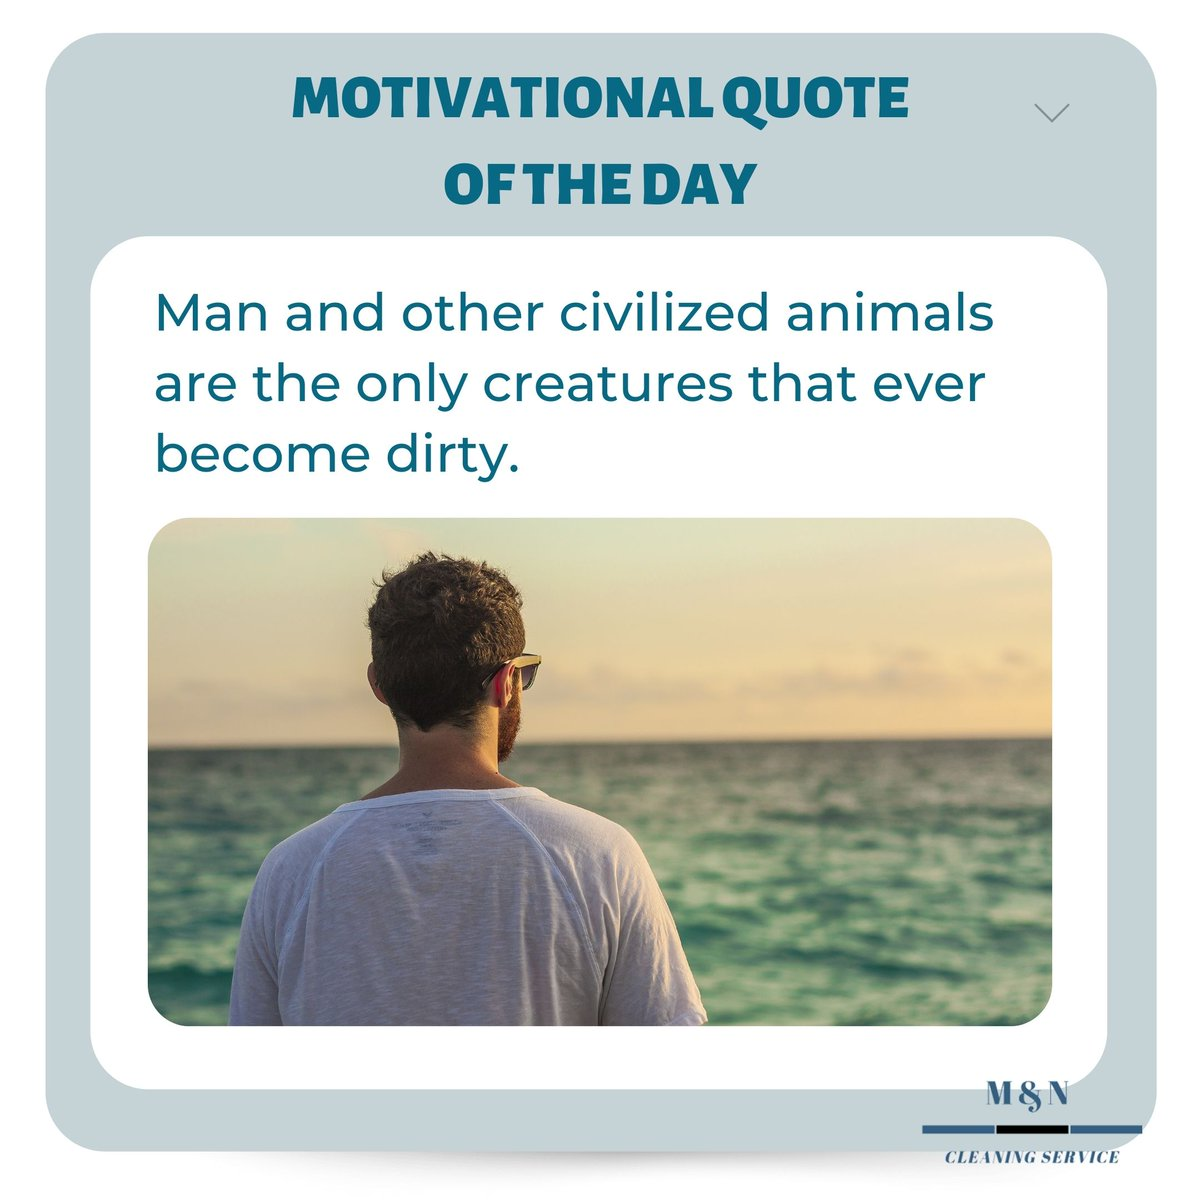 """Man and other civilized animals are the only creatures that ever become dirty.""  #QuoteOfTheDay"